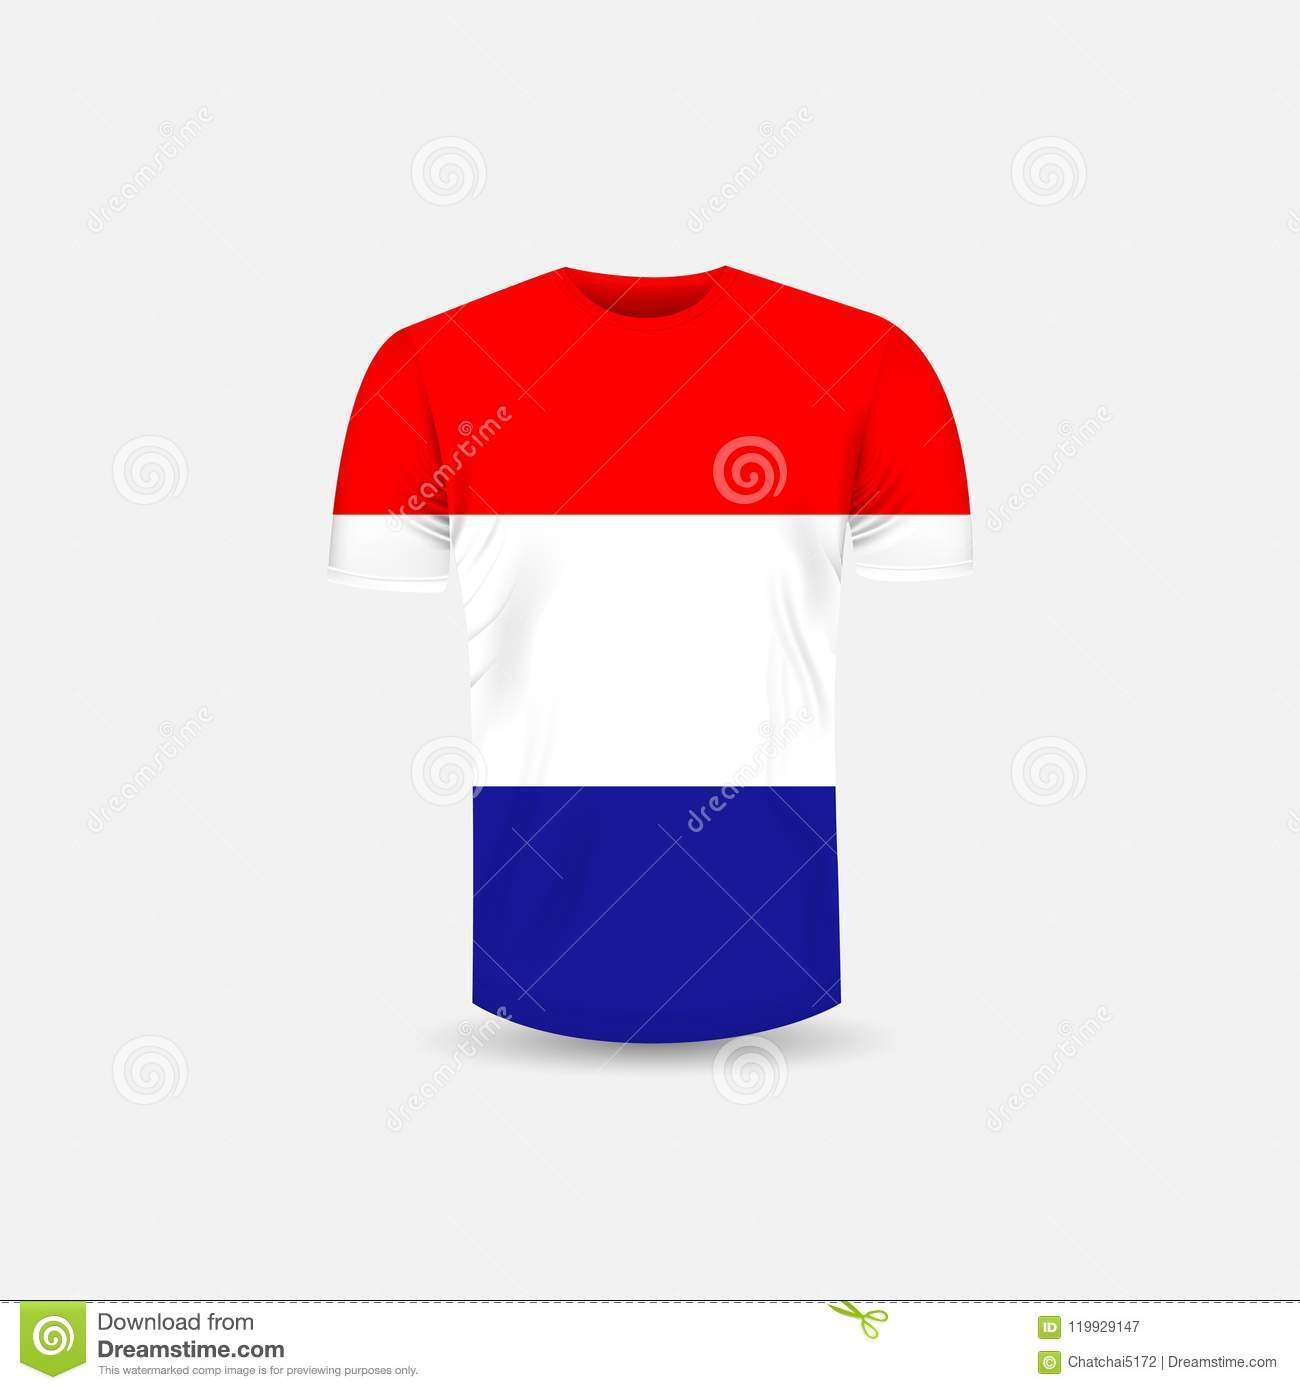 3d57c4d73547 Men`s T-shirt icon and Croatia flag background.Round neck Jersey  background.Front view.Shadows and highlights mock-up templates.White jersey  mock up ...